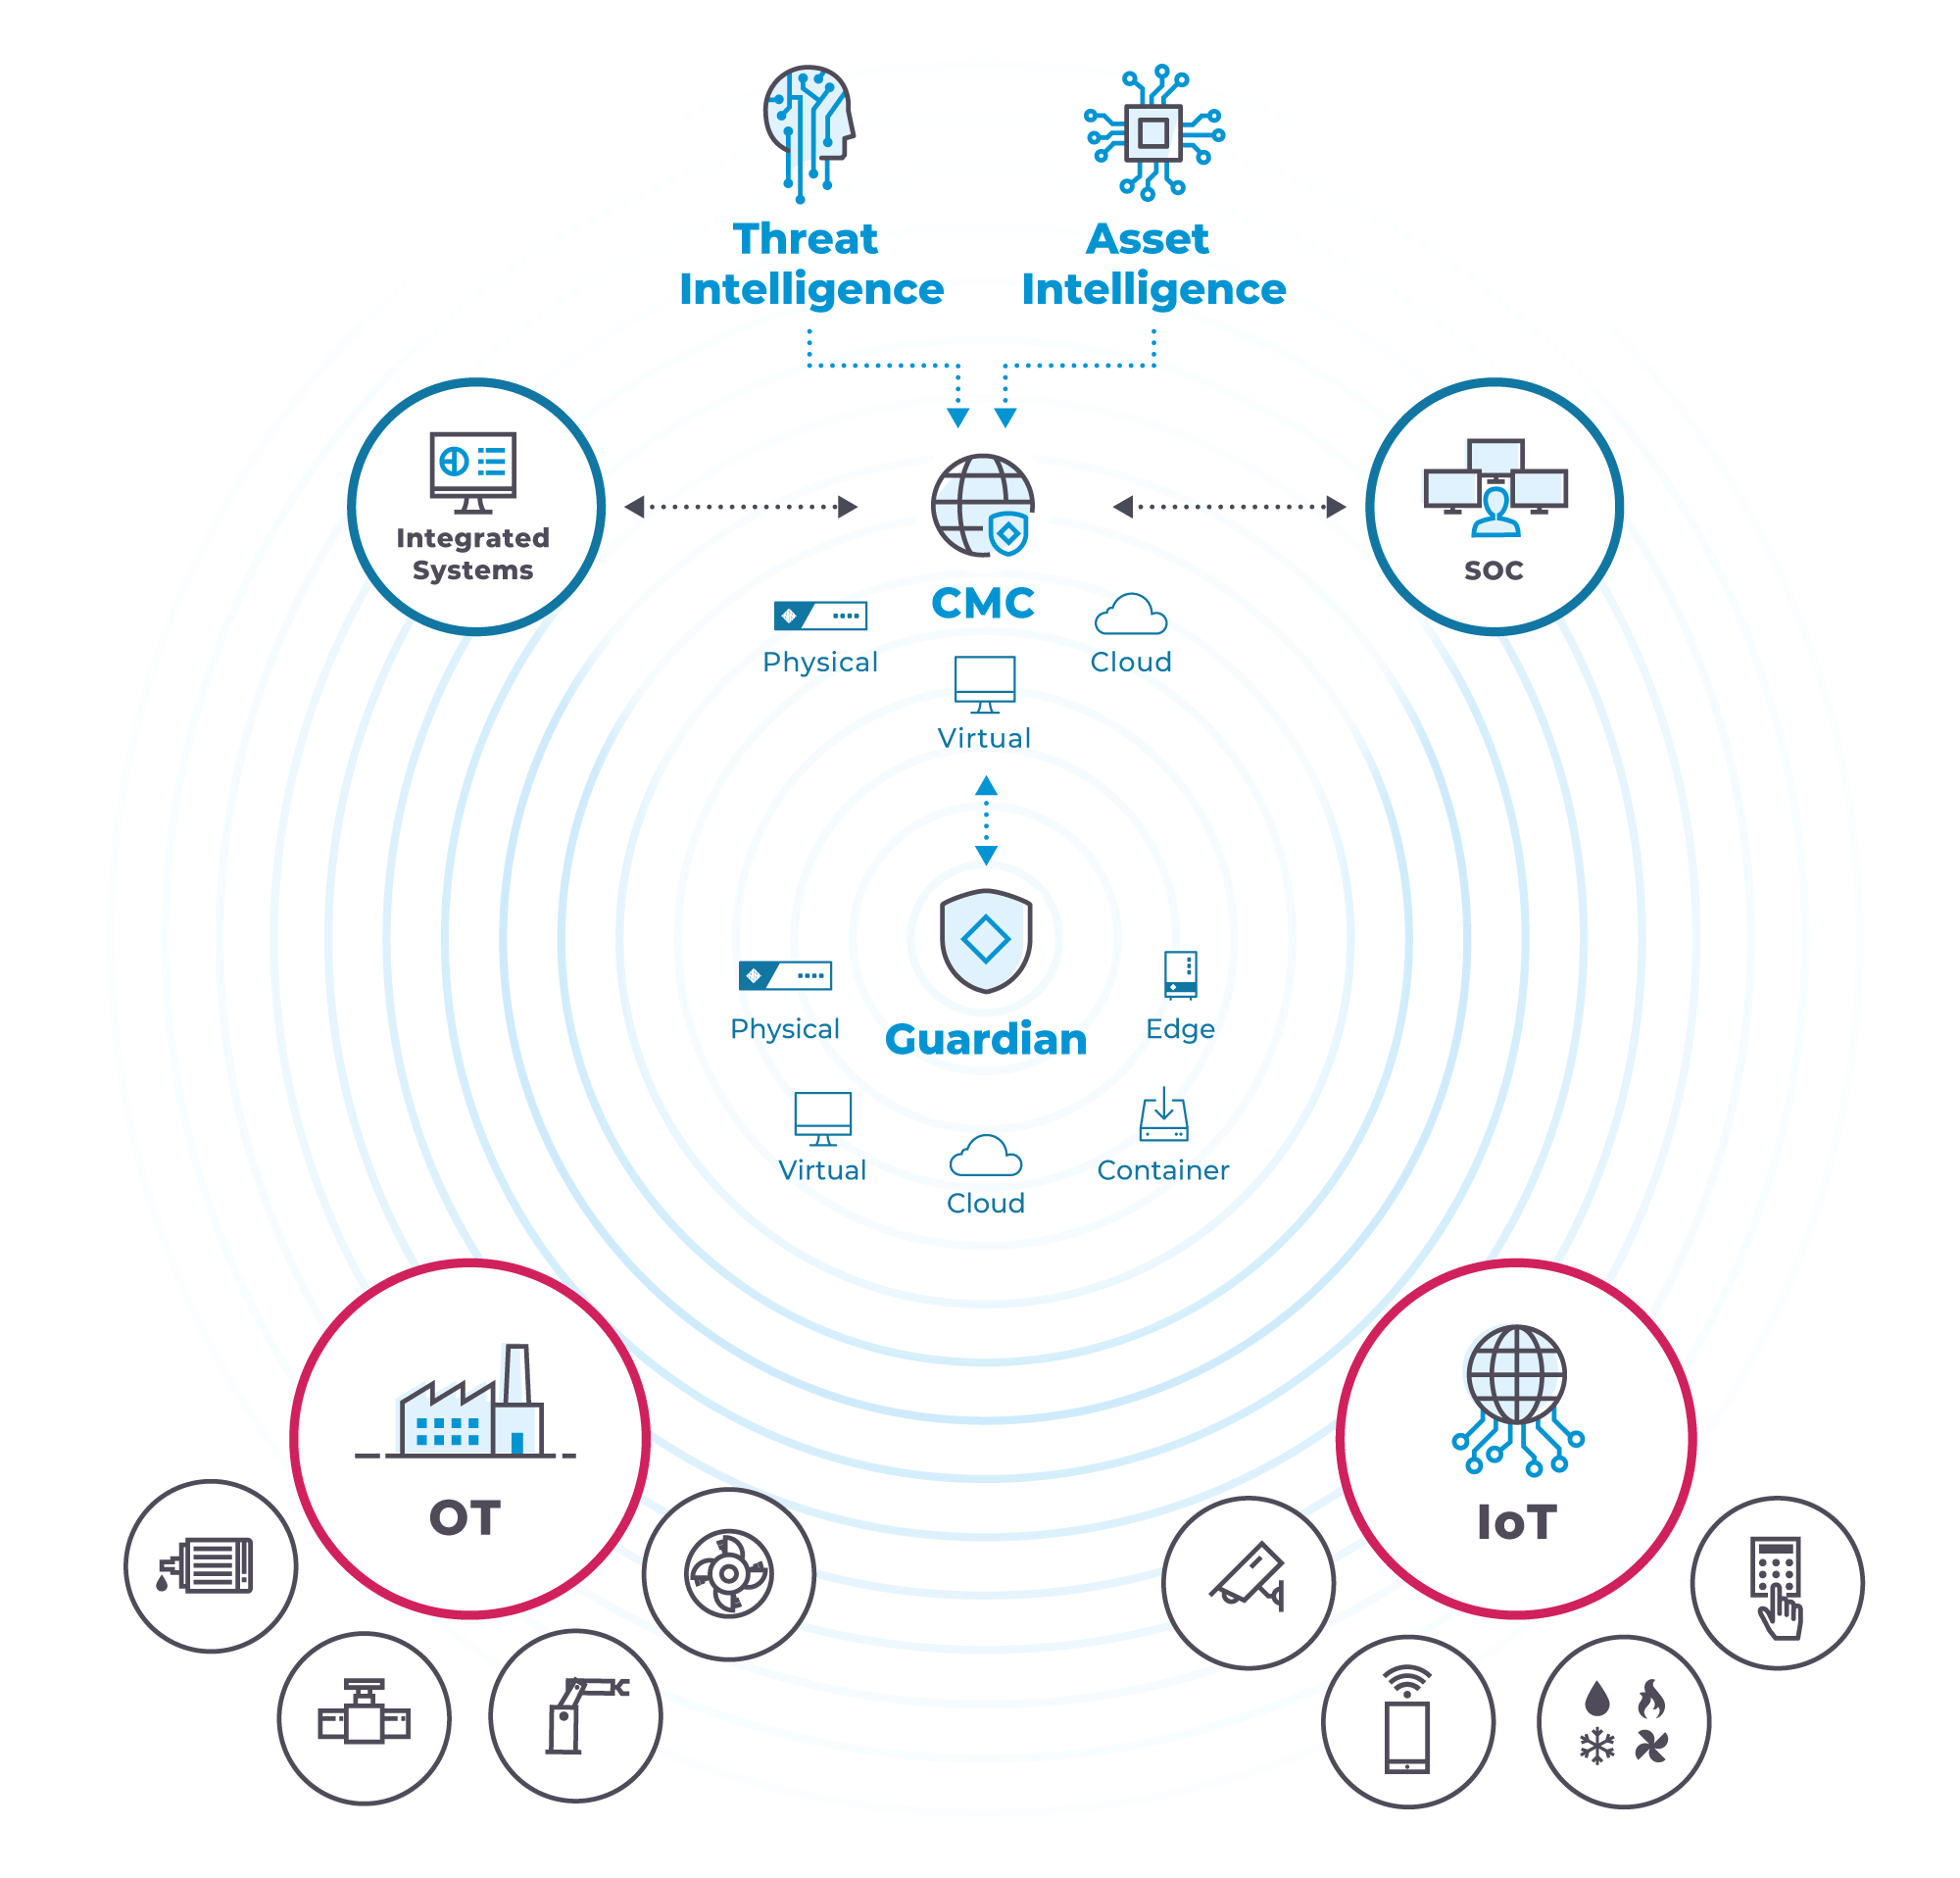 OT_IoT-Protection-Diagram-CMC-All-Deployments